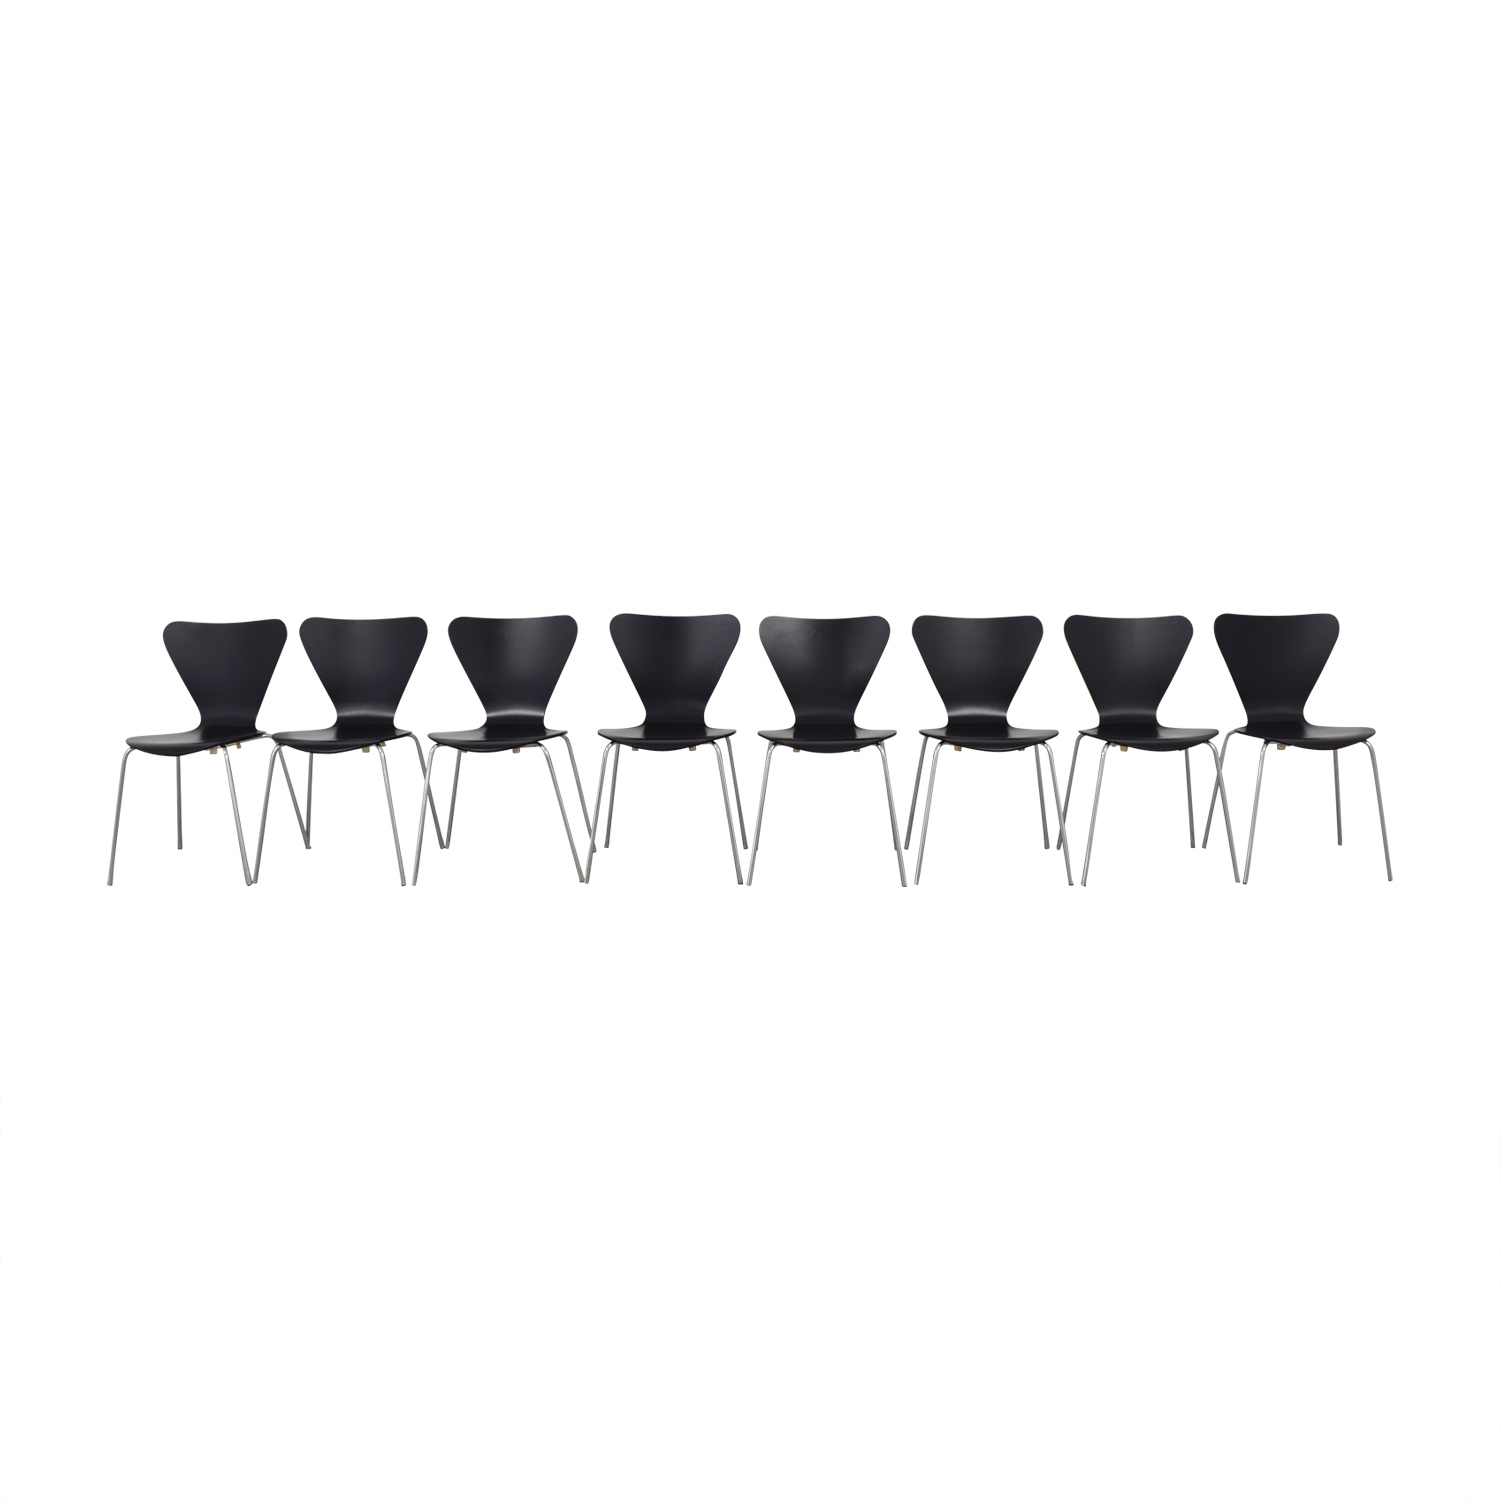 Black Wood Butterfly Chairs used